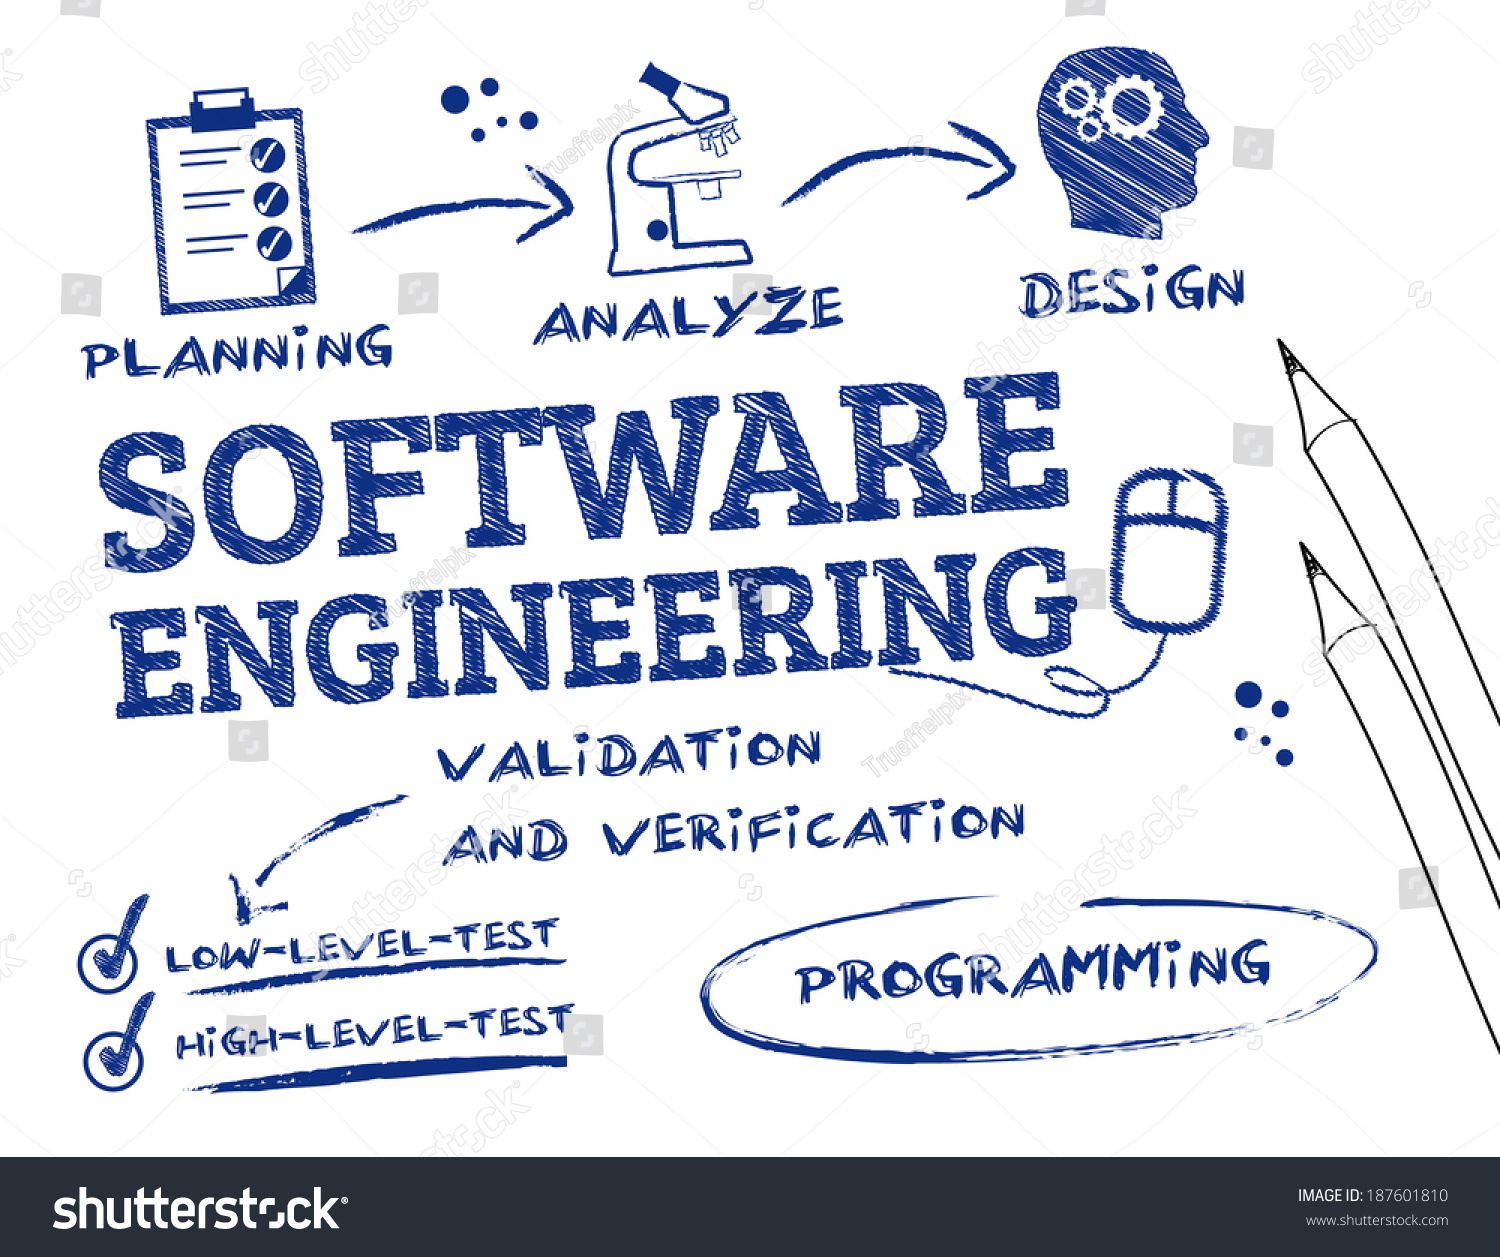 Software Engineering Study Application Engineering Design Stock Vector Royalty Free 187601810